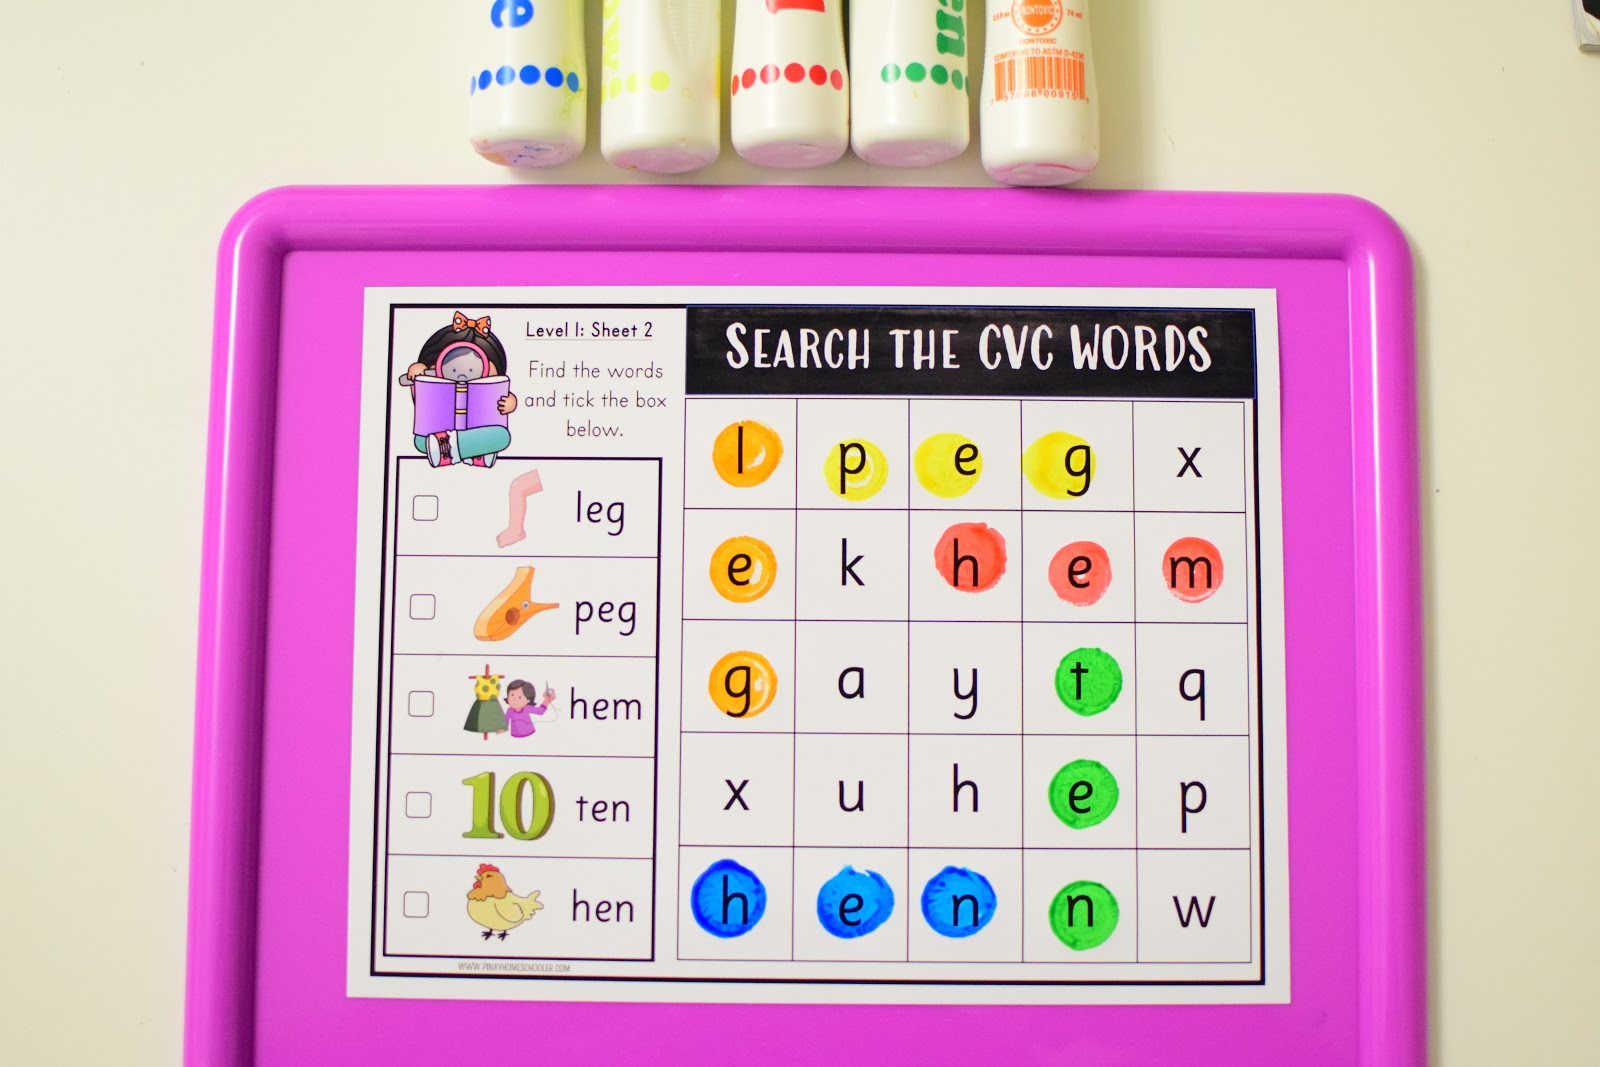 Cvc Word Search For Literacy Plus Free Sampler! | The Pinay